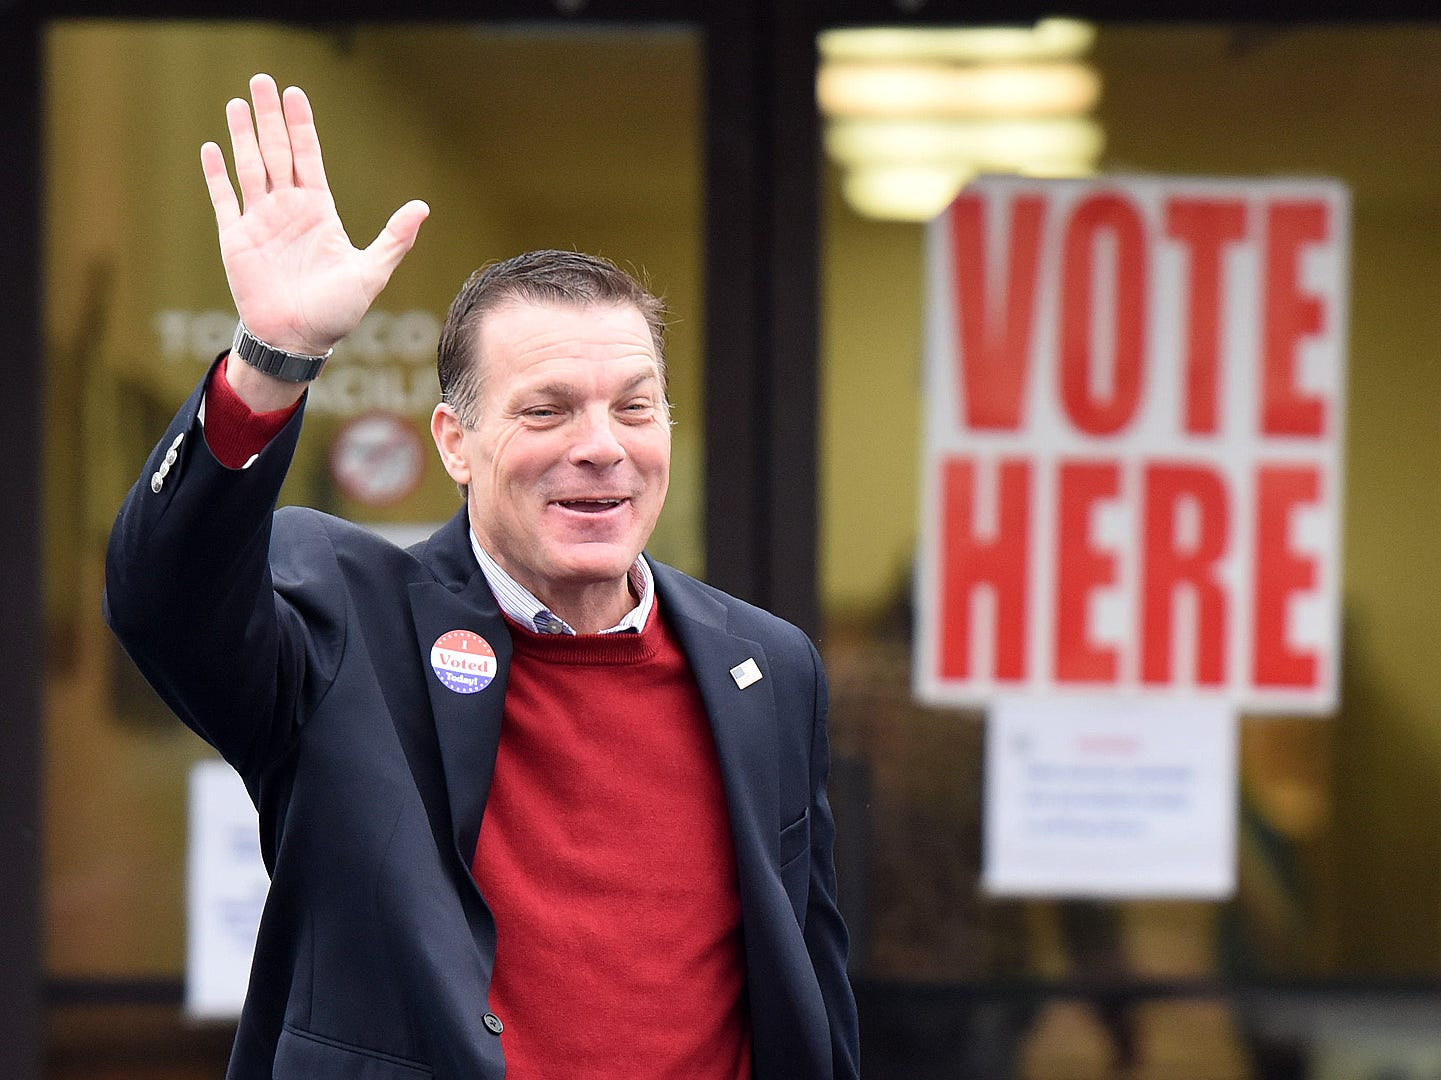 U.S. Senate candidate Rob Arlett waves after voting at Roxana Fire Station as Voter turnout in eastern Sussex County has been steady at polling places in Rehoboth, Roxana, and Angola as candidates still greet supporters for their support.